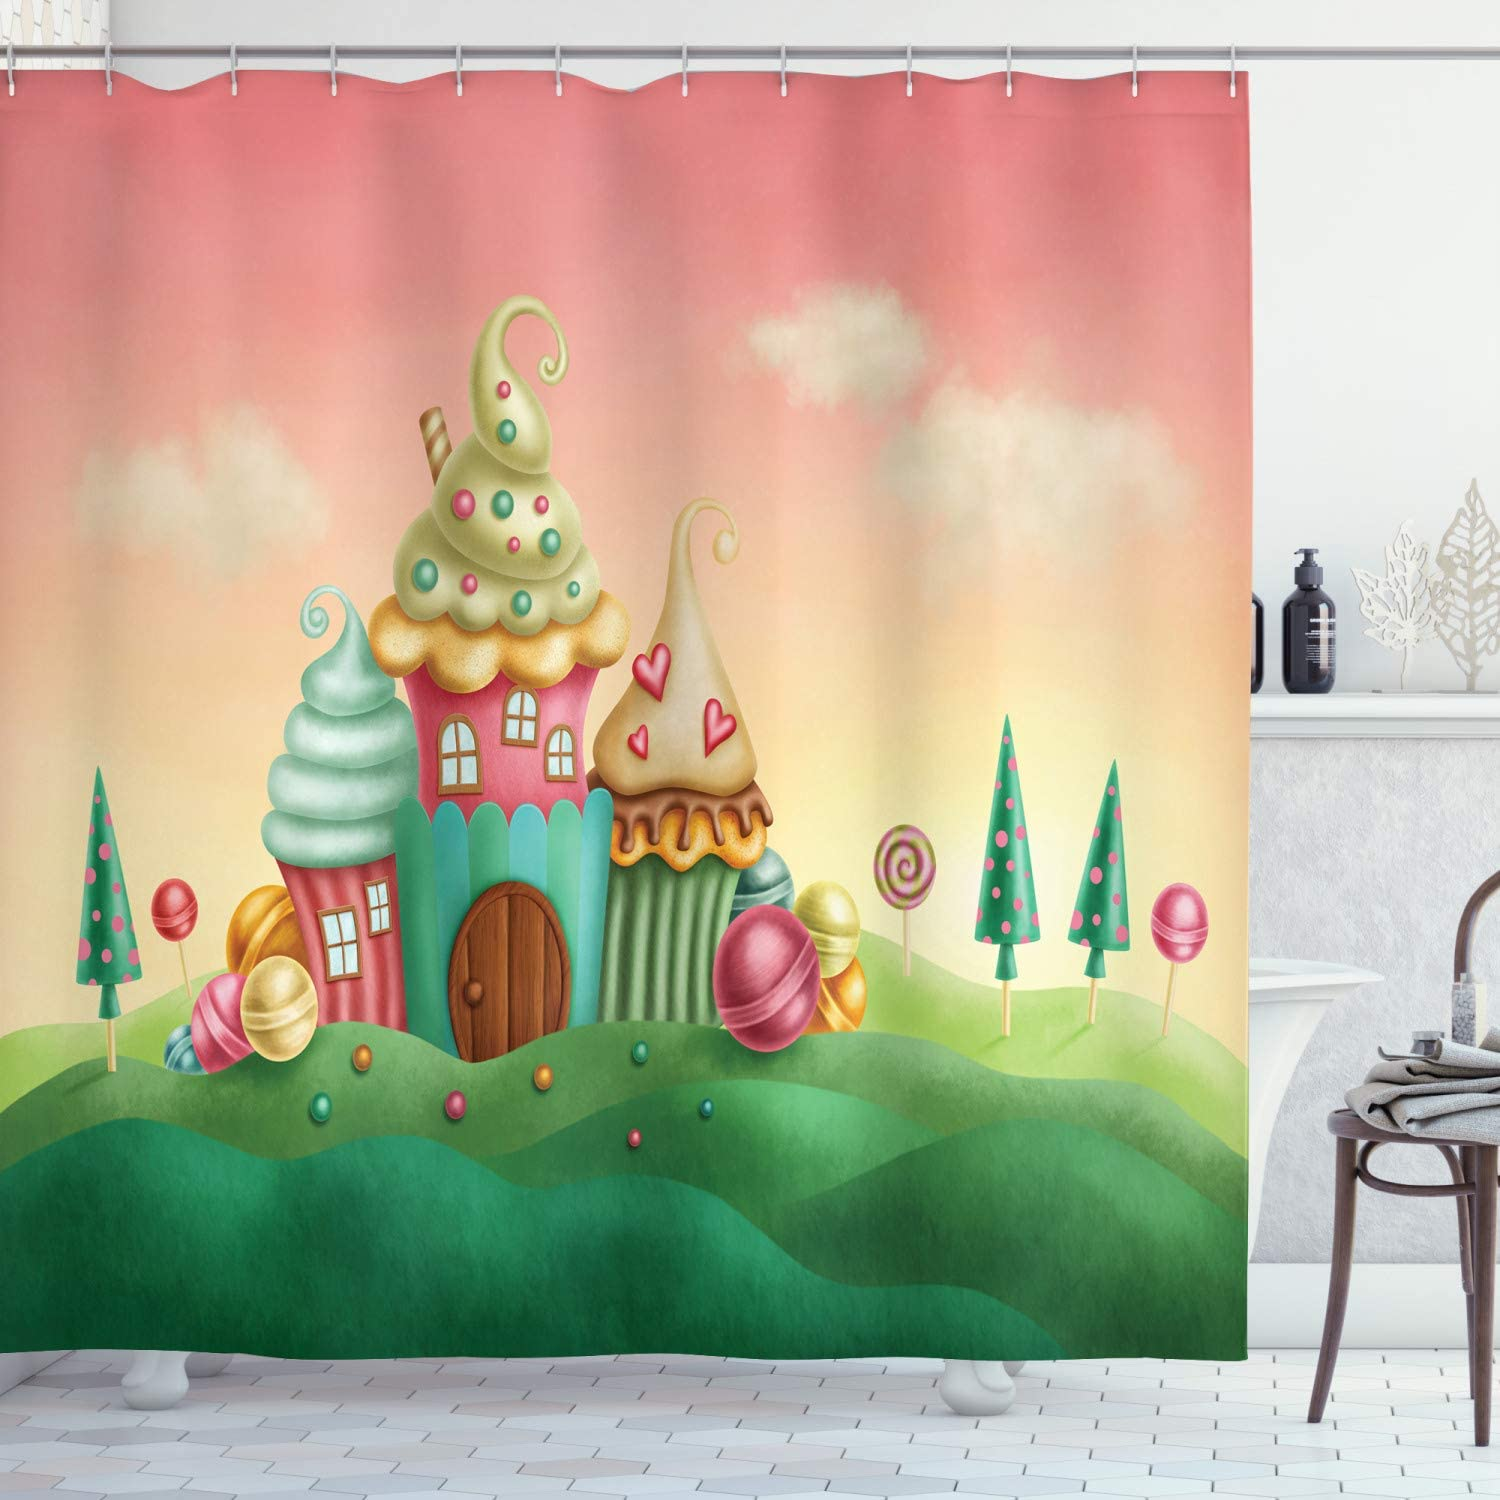 "Ambesonne Feminine Shower Curtain, Fantasy Houses from Cupcakes Candy and in Grassland Children Artwork, Cloth Fabric Bathroom Decor Set with Hooks, 70"" Long, Coral Green"